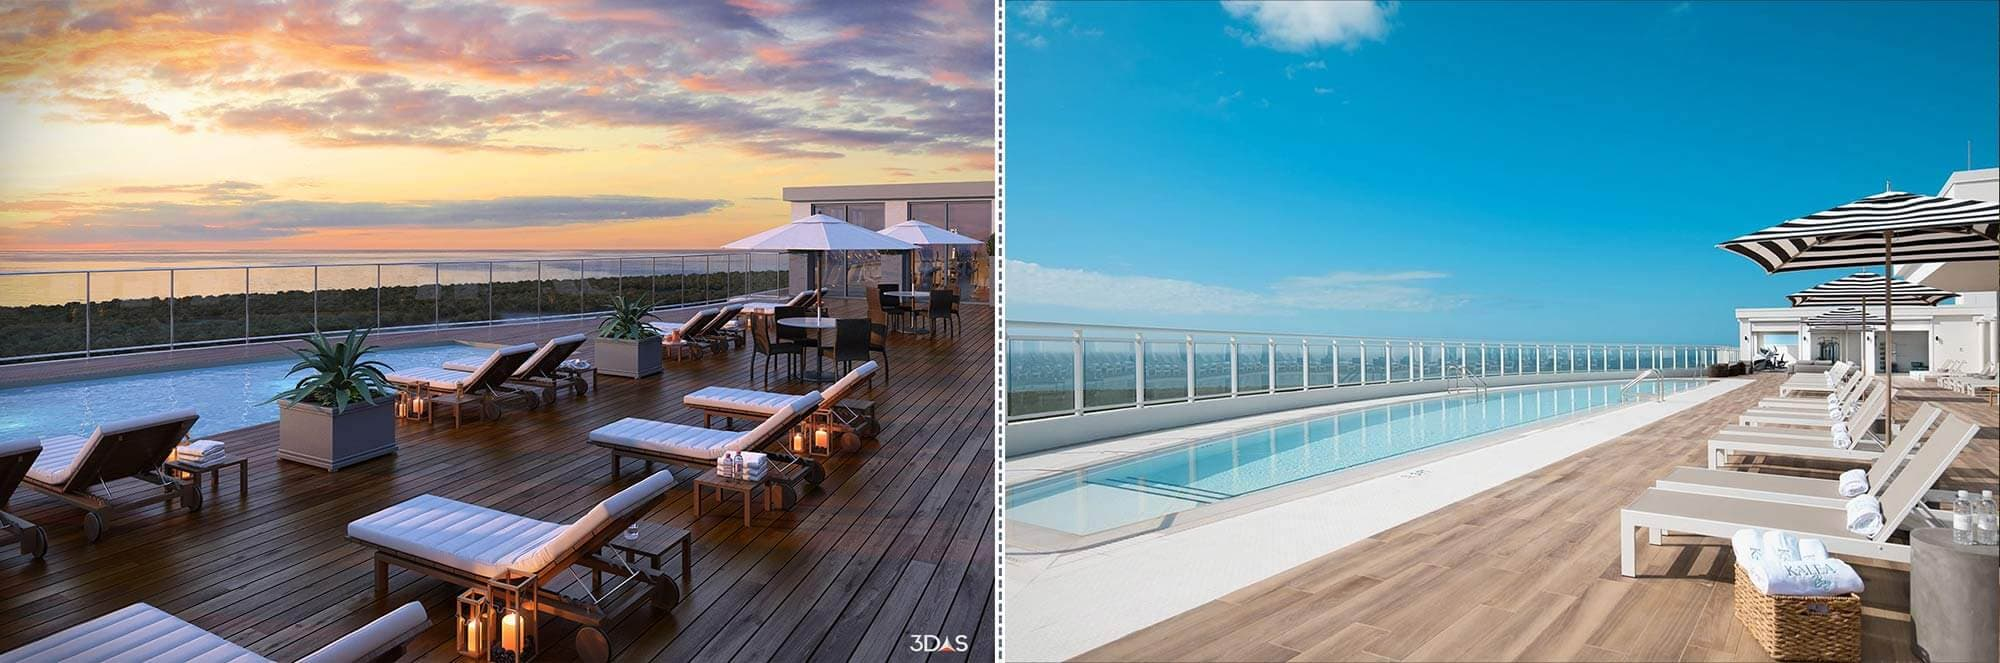 Kalea Bay Rooftop View from Tower 3D Rendering (Left) and Photo (Right)